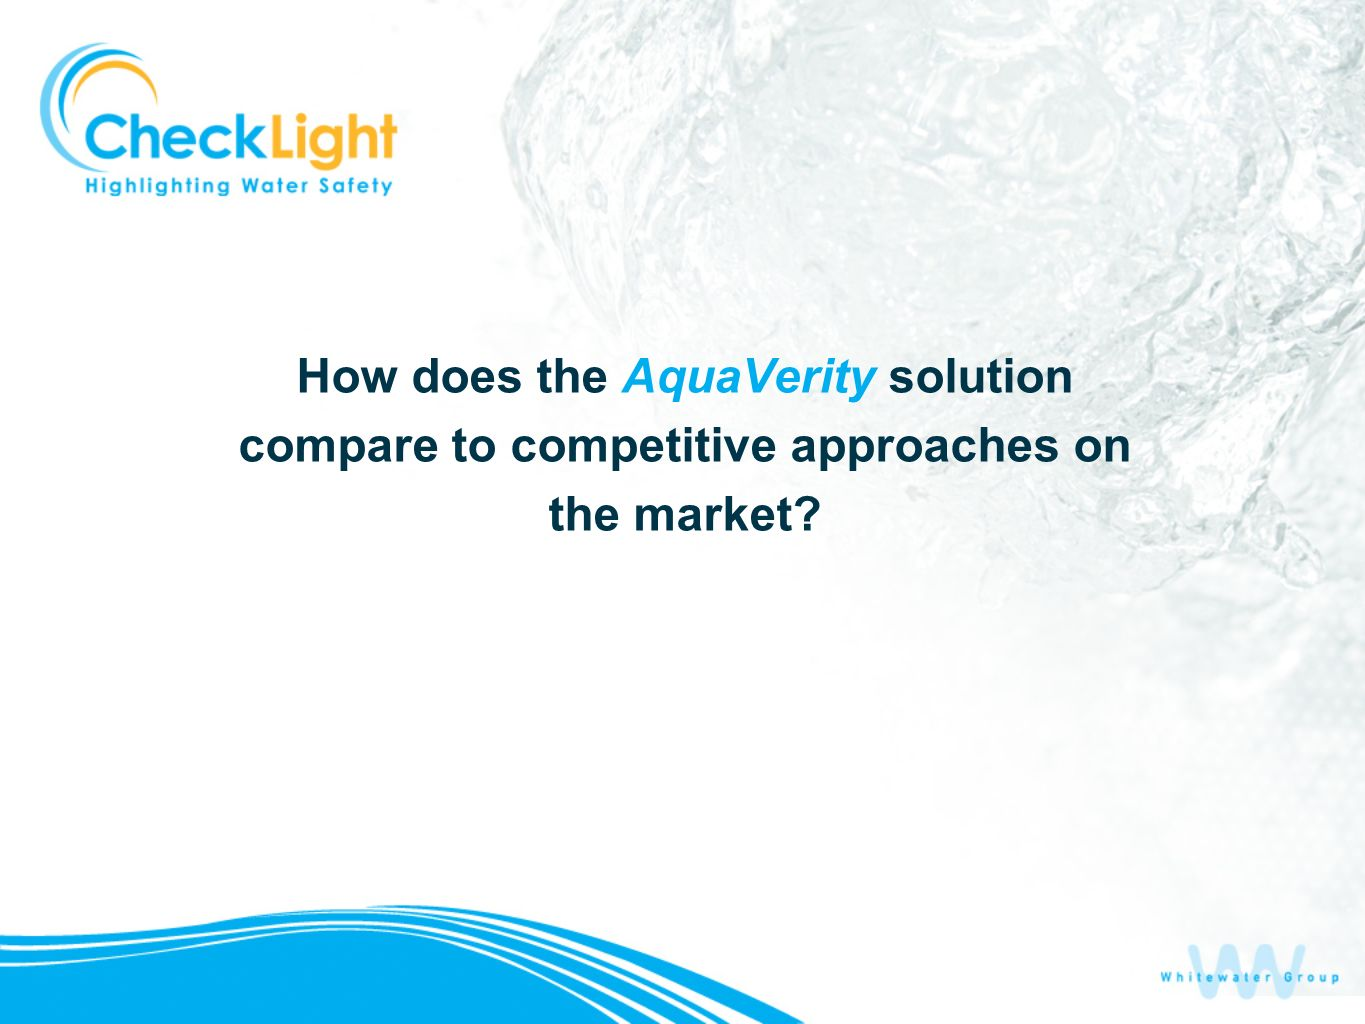 How does the AquaVerity solution compare to competitive approaches on the market